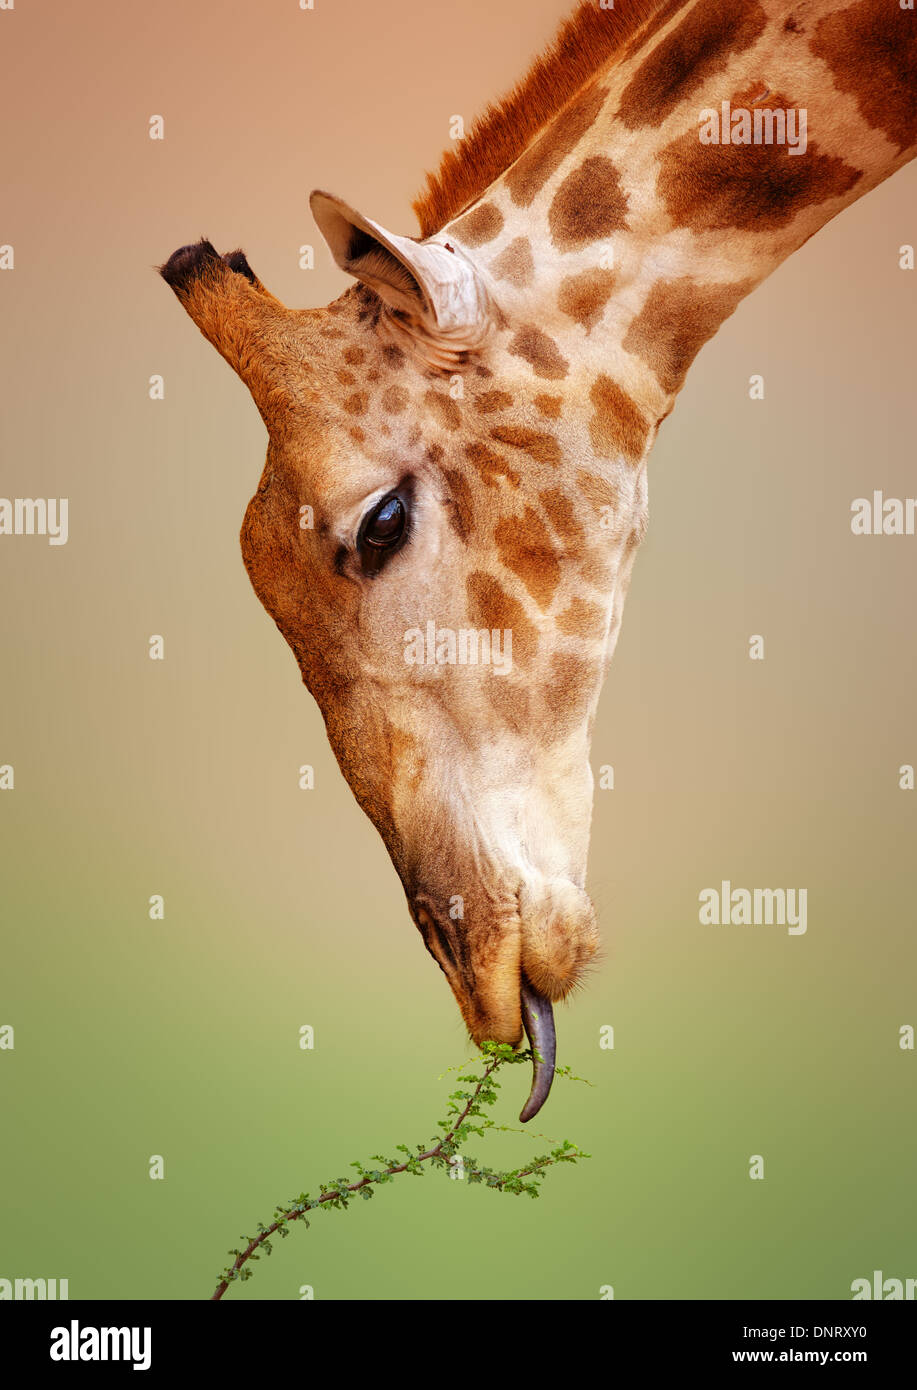 Close-up d'une girafe mangeant un buisson - Kgalagadi Transfrontier Park (Afrique du Sud) Photo Stock